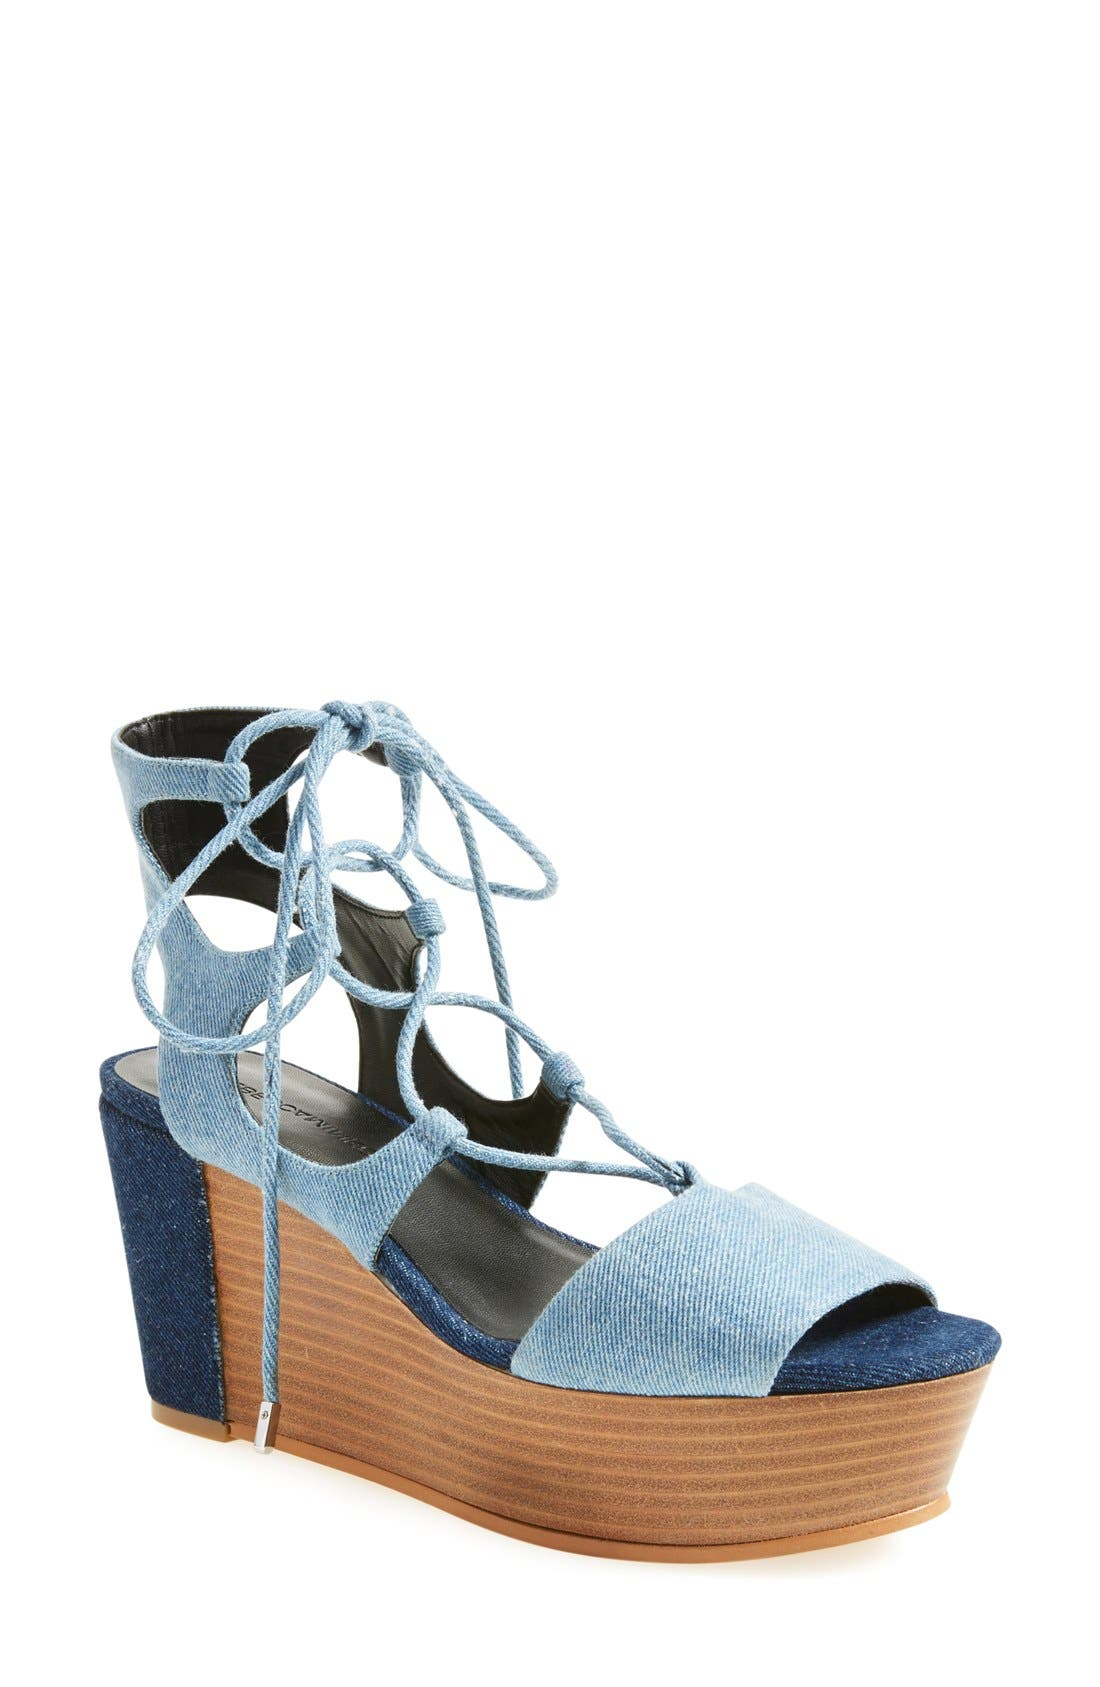 Main Image - Rebecca Minkoff Cady Wedge Sandal (Women)